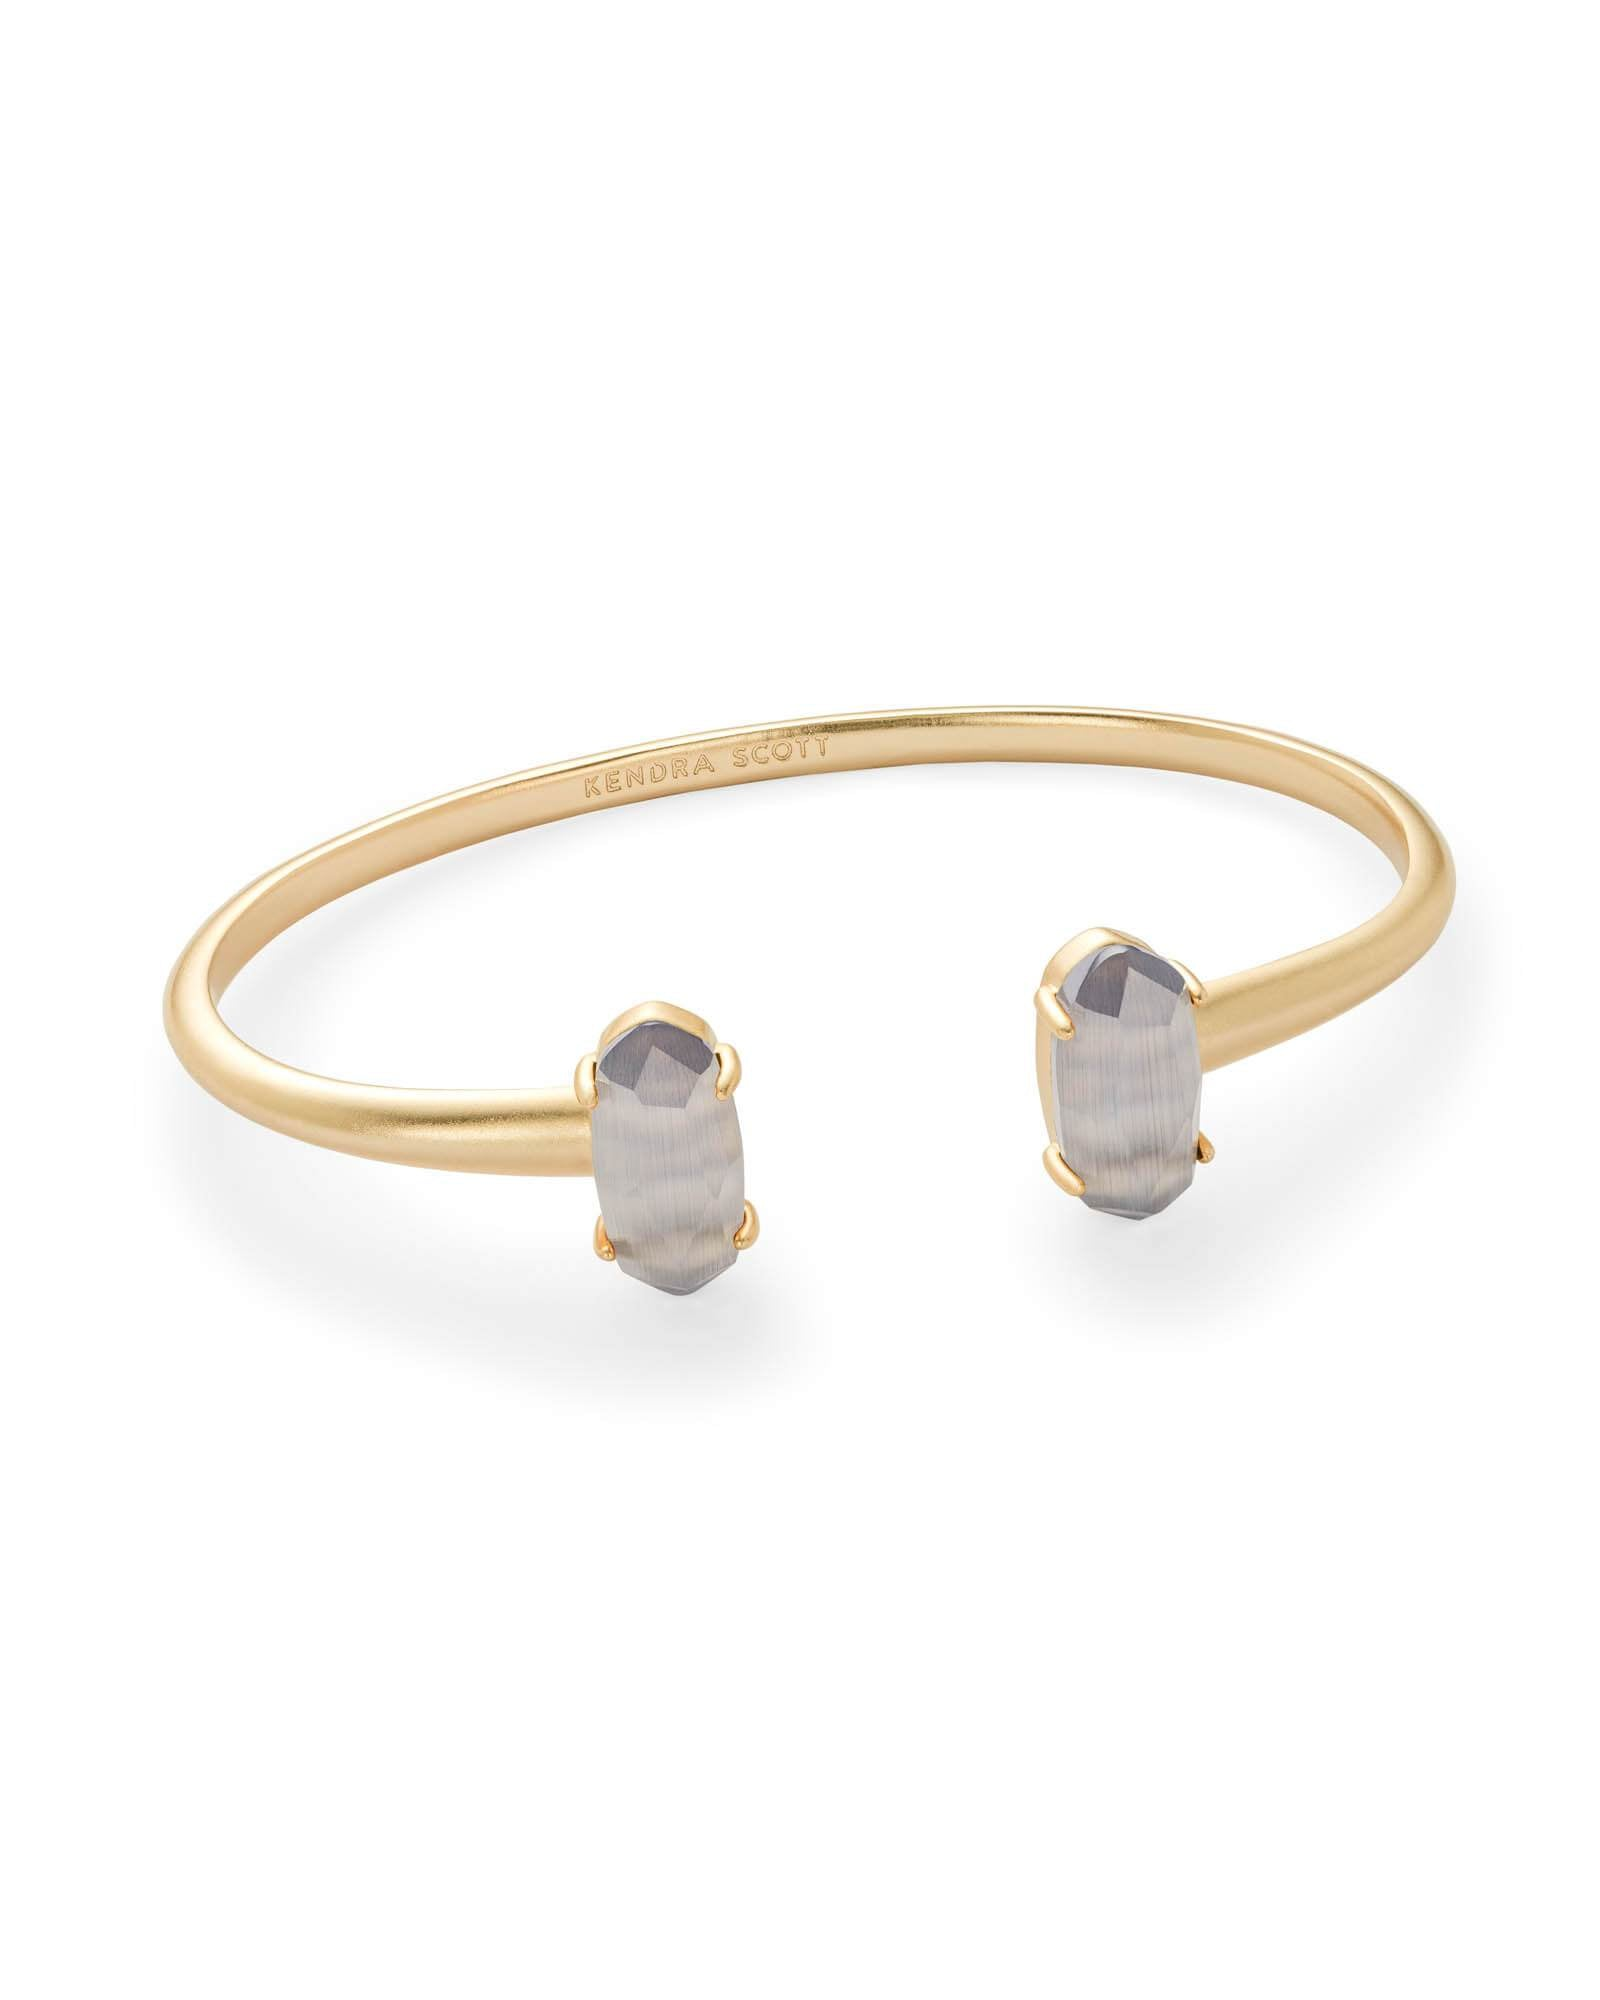 Edie Gold Slate Cat'S Eye Bracelet